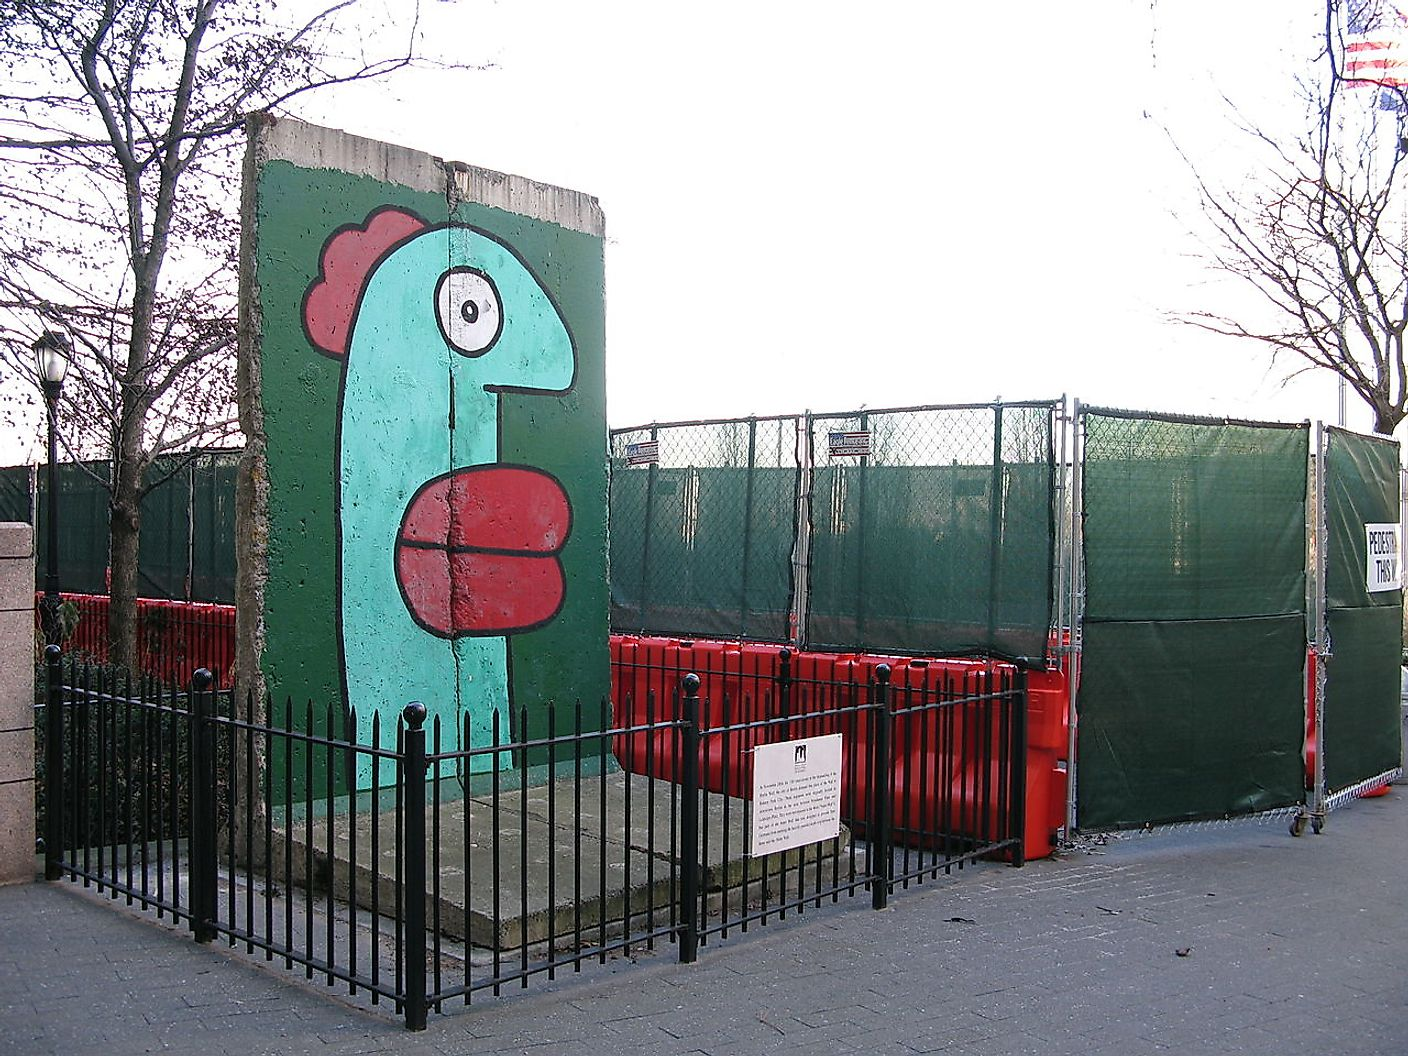 Segment of Berlin wall in New York City. Image credit: Ronny-Bonny/Wikimedia.org